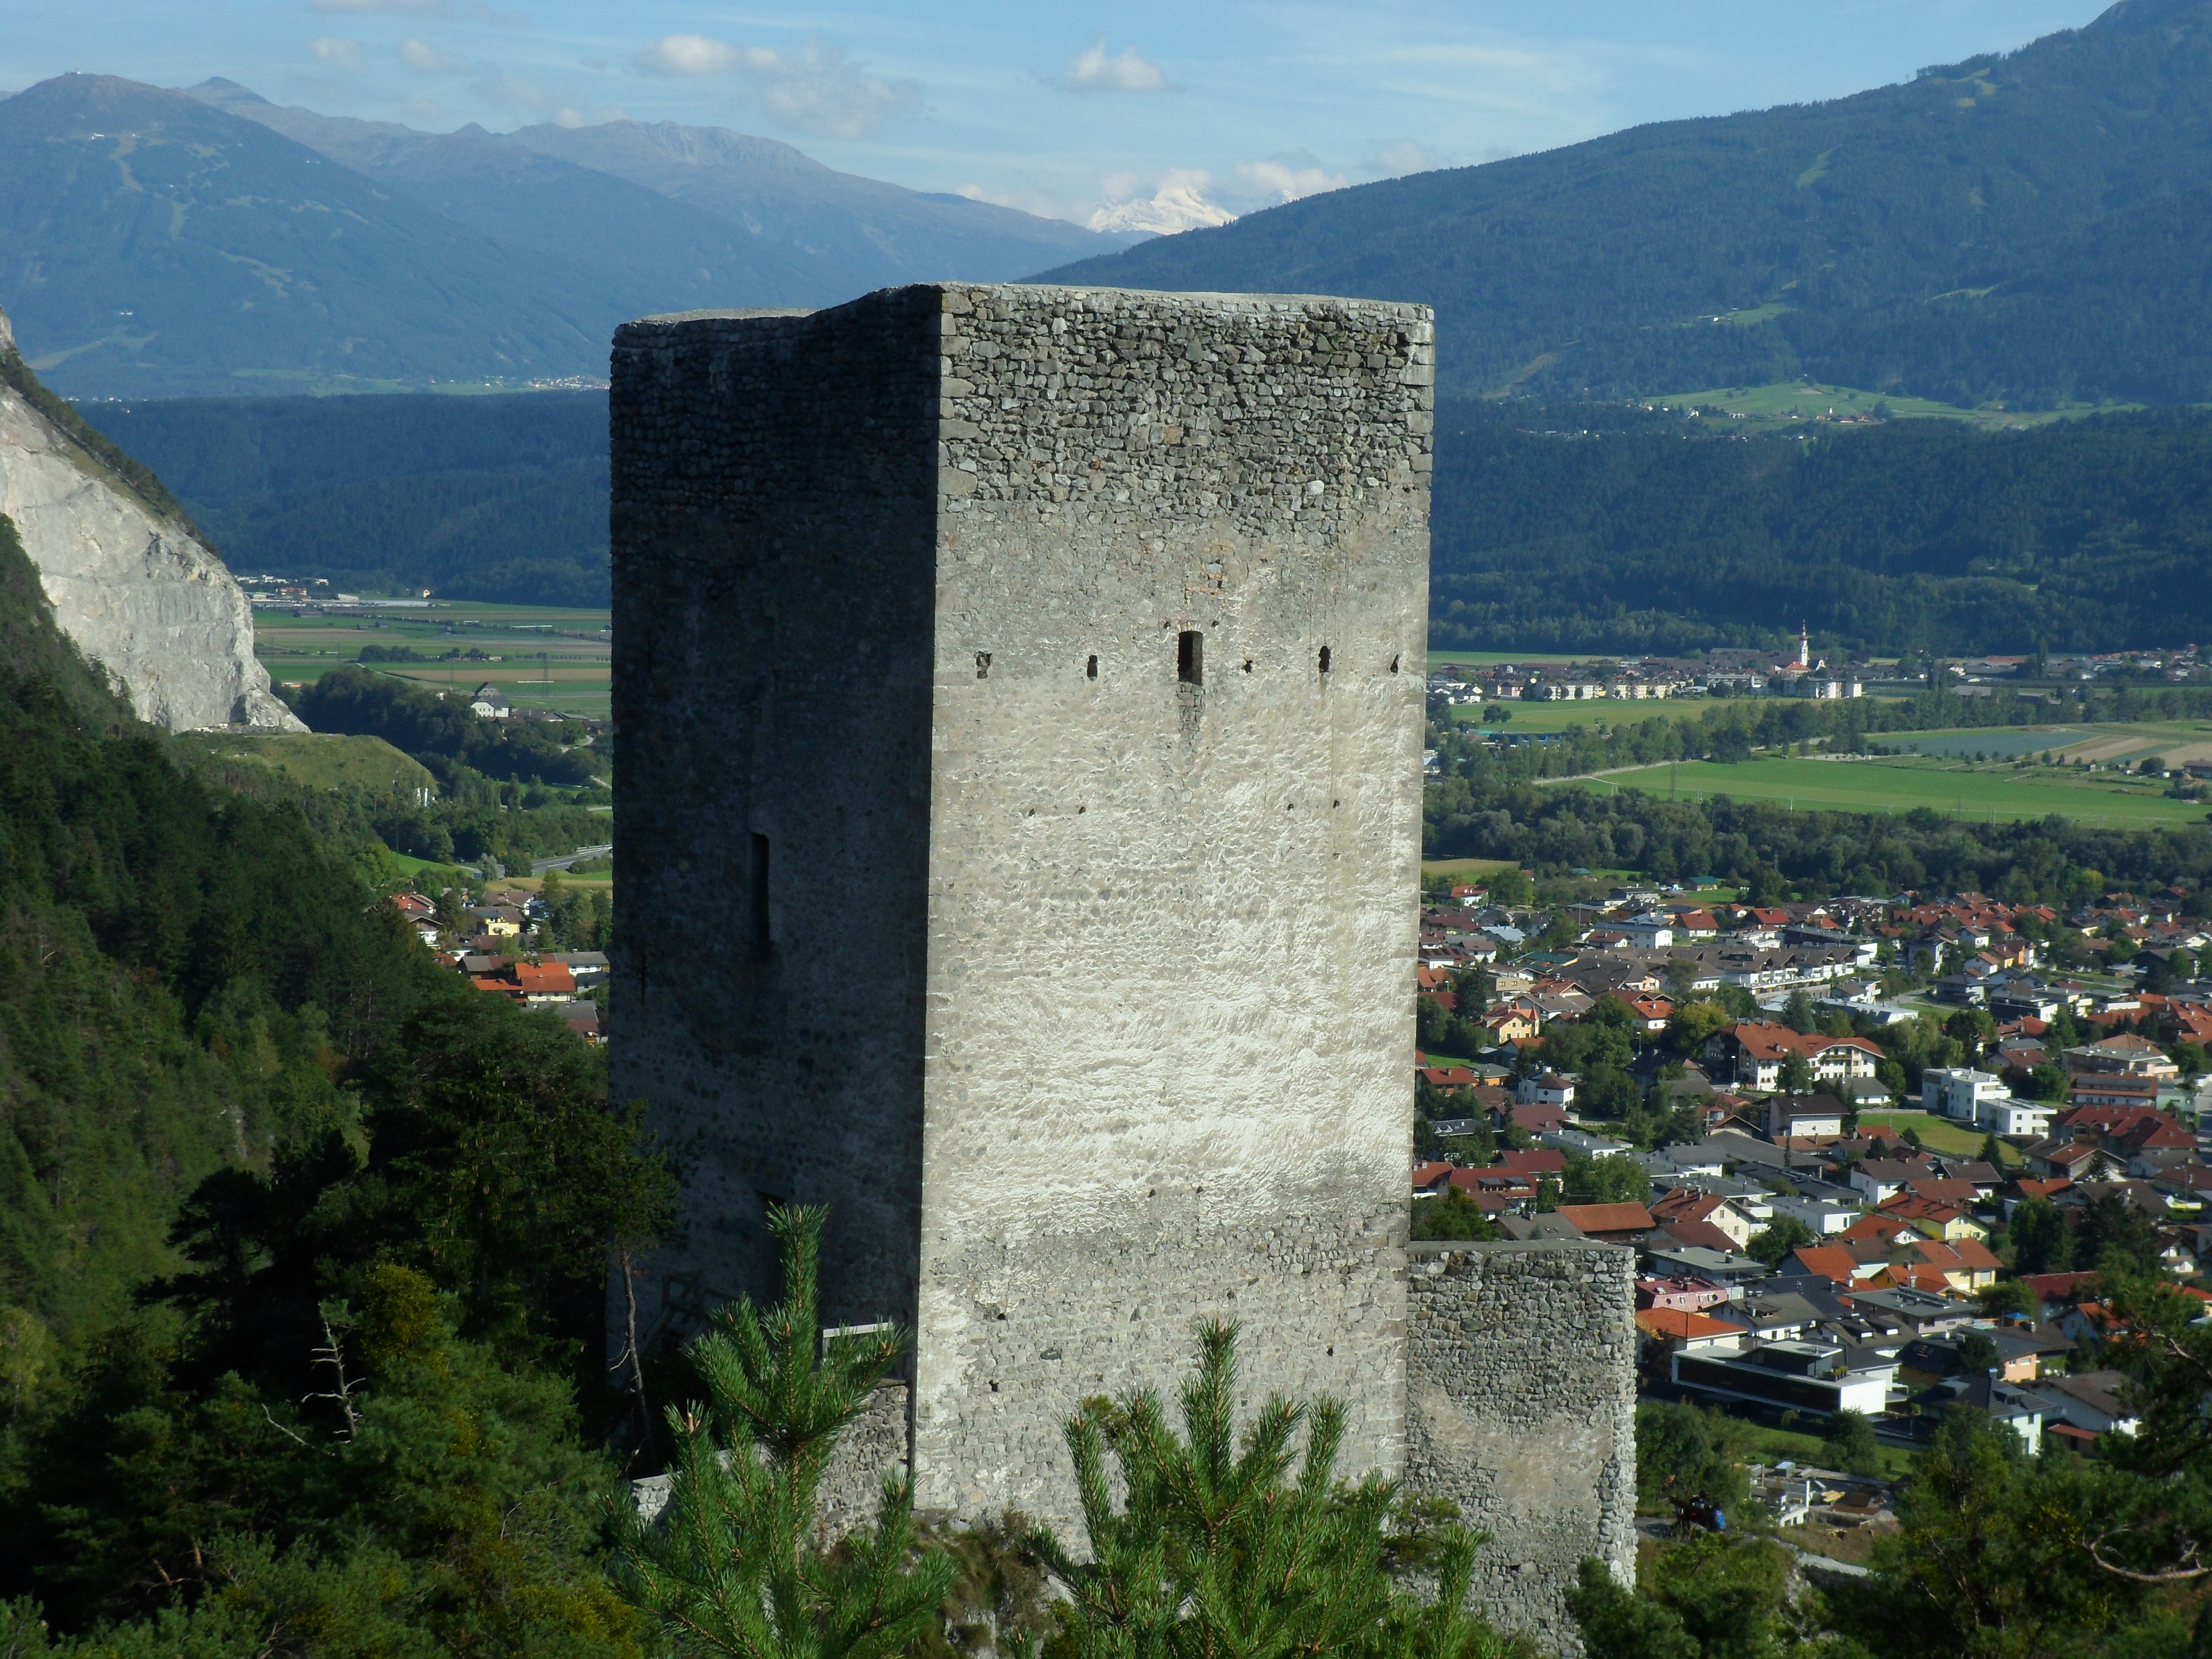 A photo of the bare stone keep of a cliff-top castle overlooking a small town